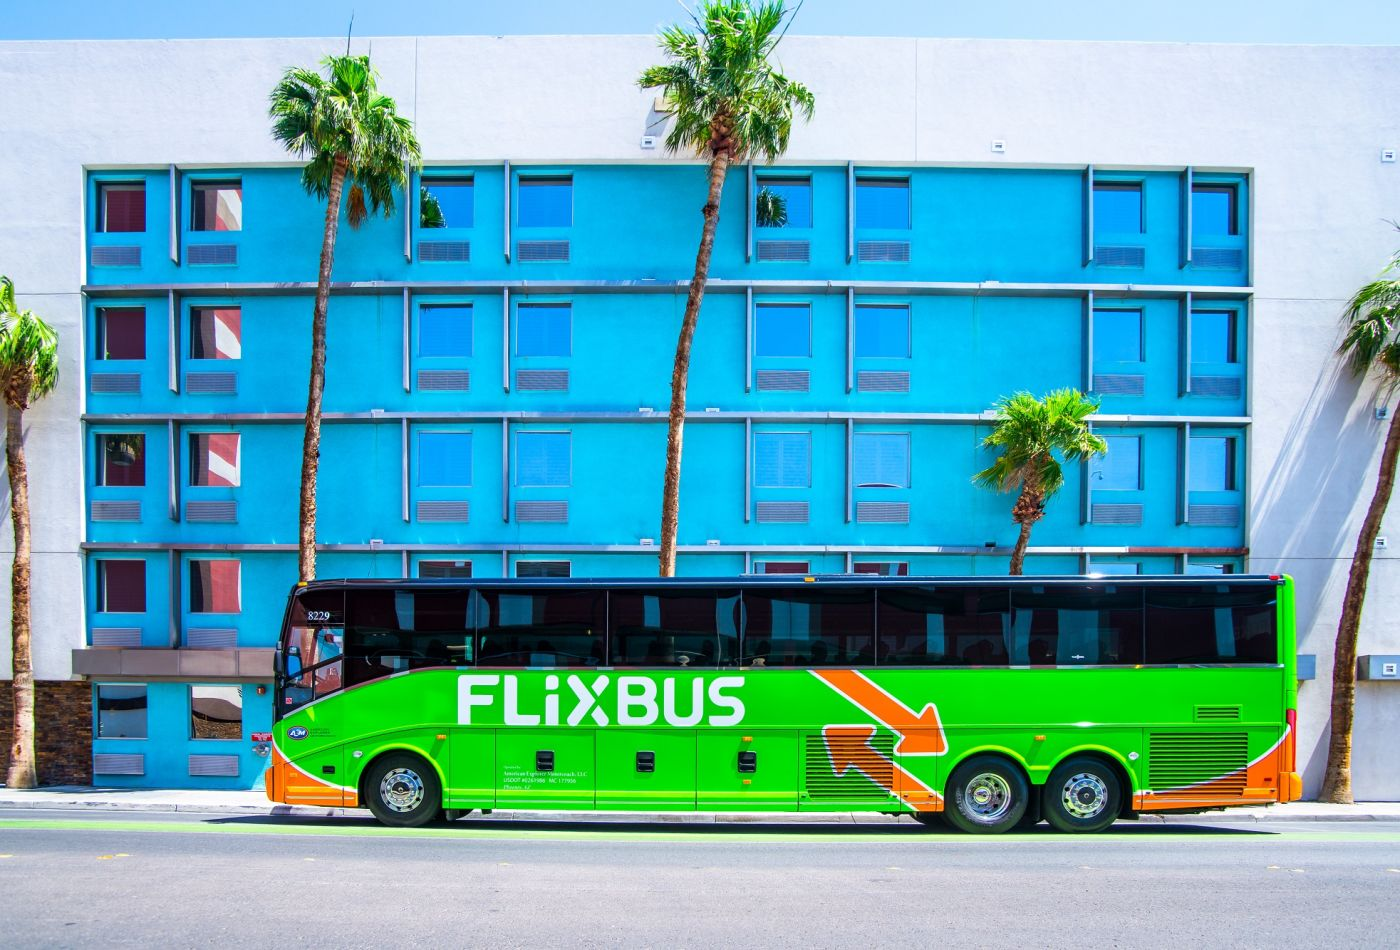 Travelling with Flixbus: my experience